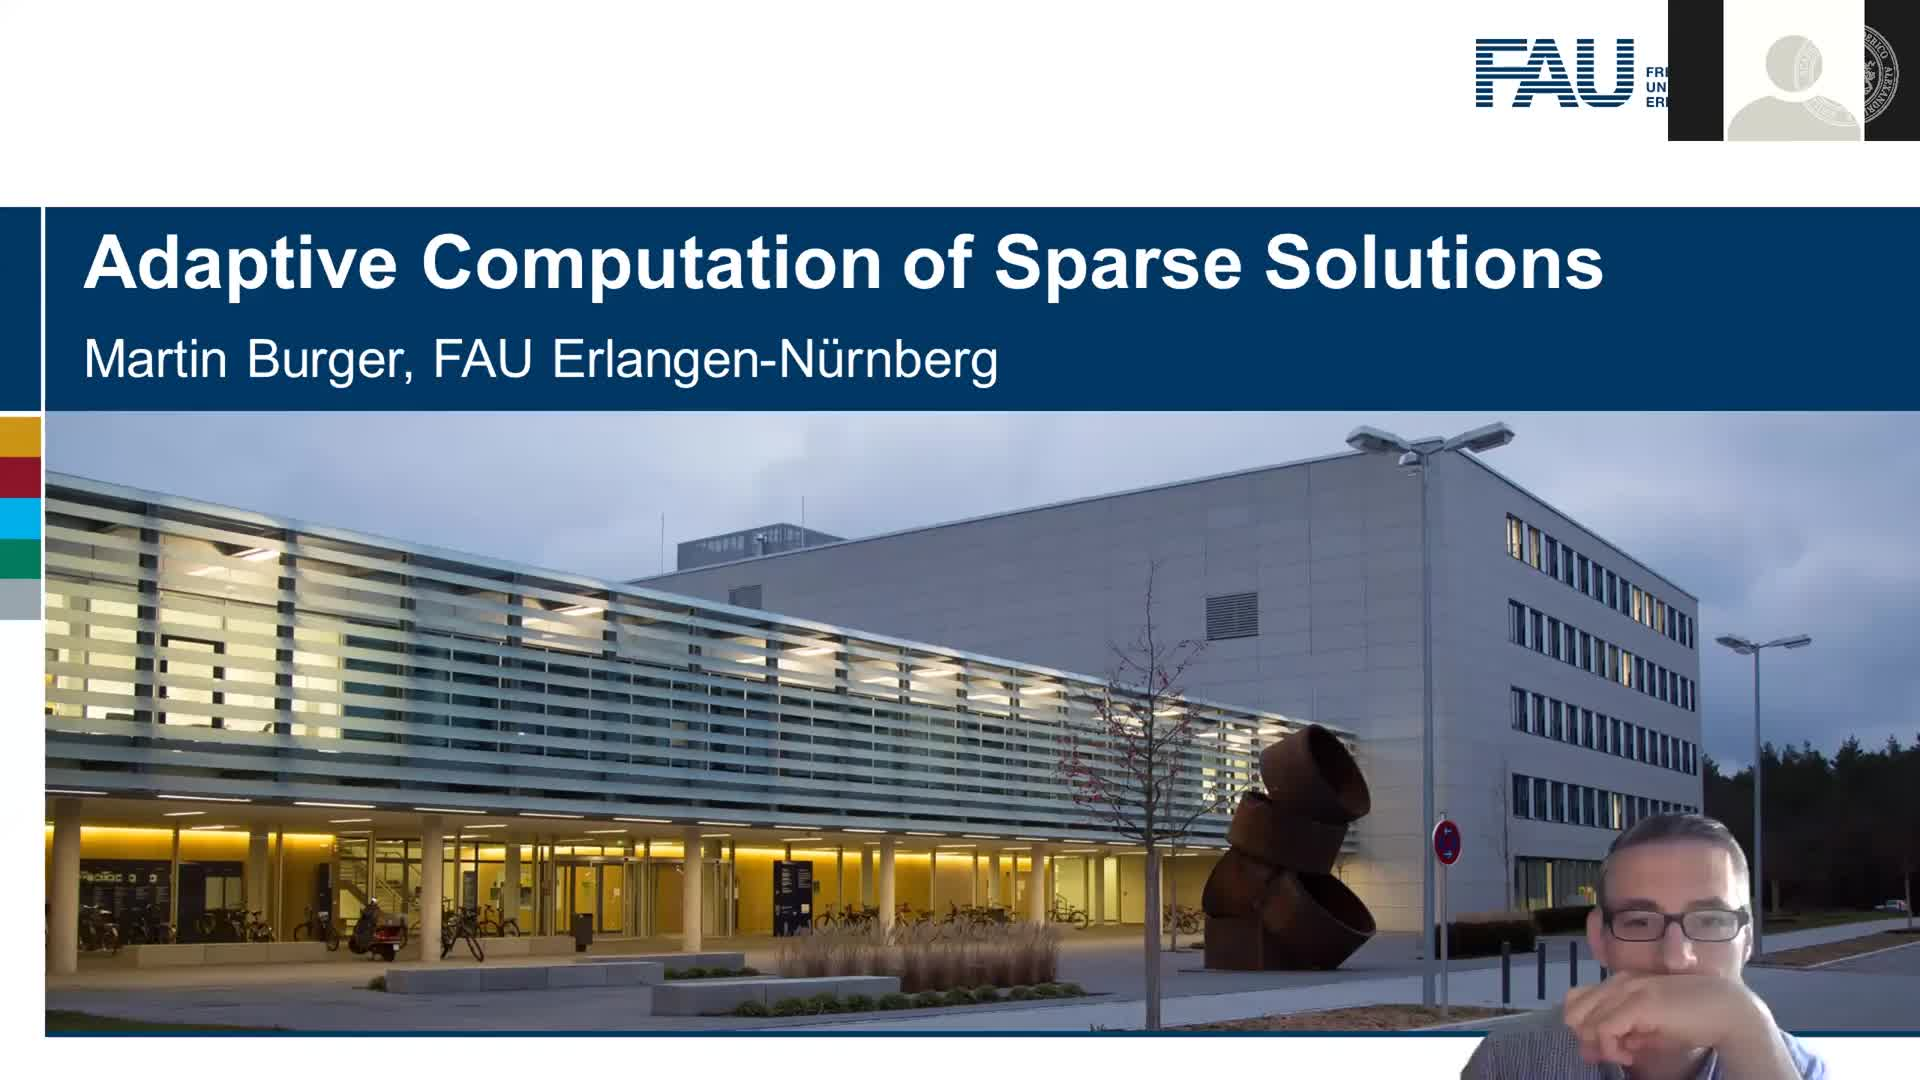 Adaptive Computation of Sparse Solutions (M. Burger, FAU, Germany) preview image